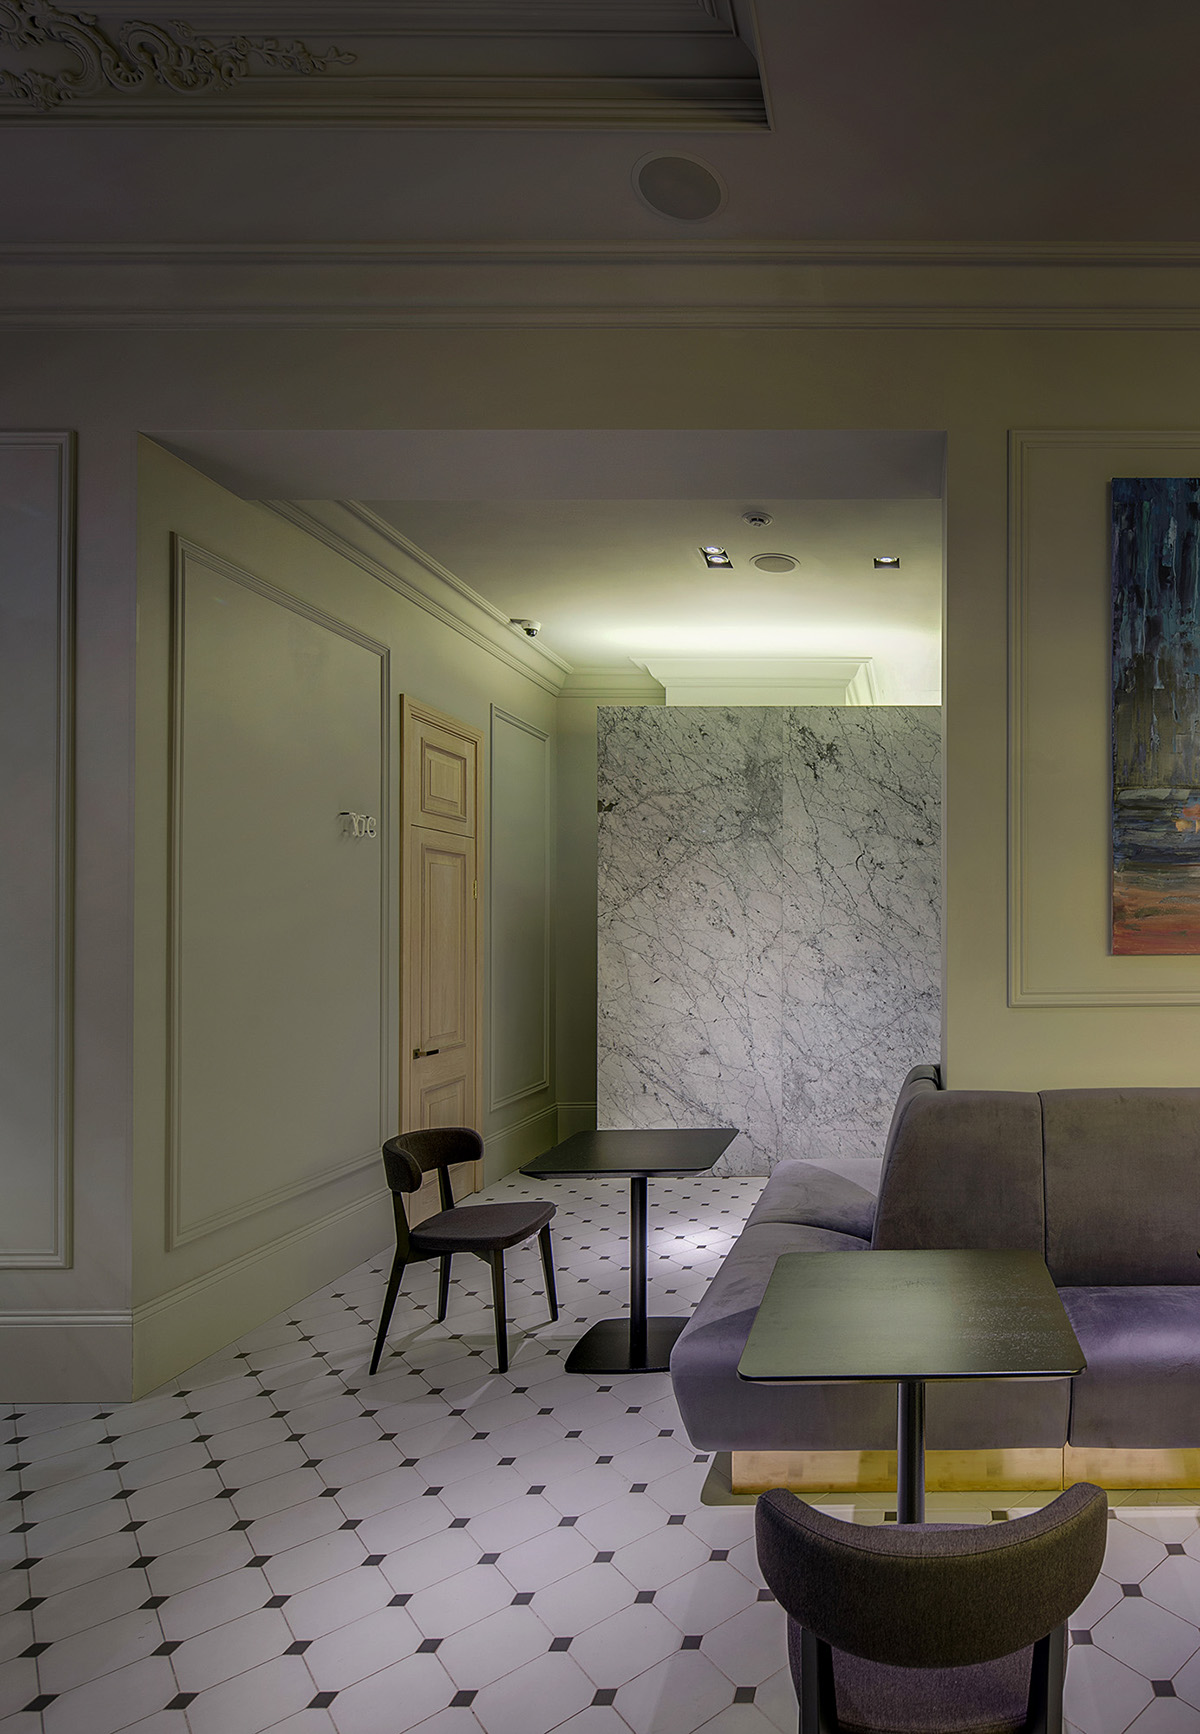 ... Regular Seating Zone And Lounge Seating For Company At The Round Table,  Area Of Bar And Semi Bar Seating. Marble Bar Counter Is Emphasized By  Sculptural ...